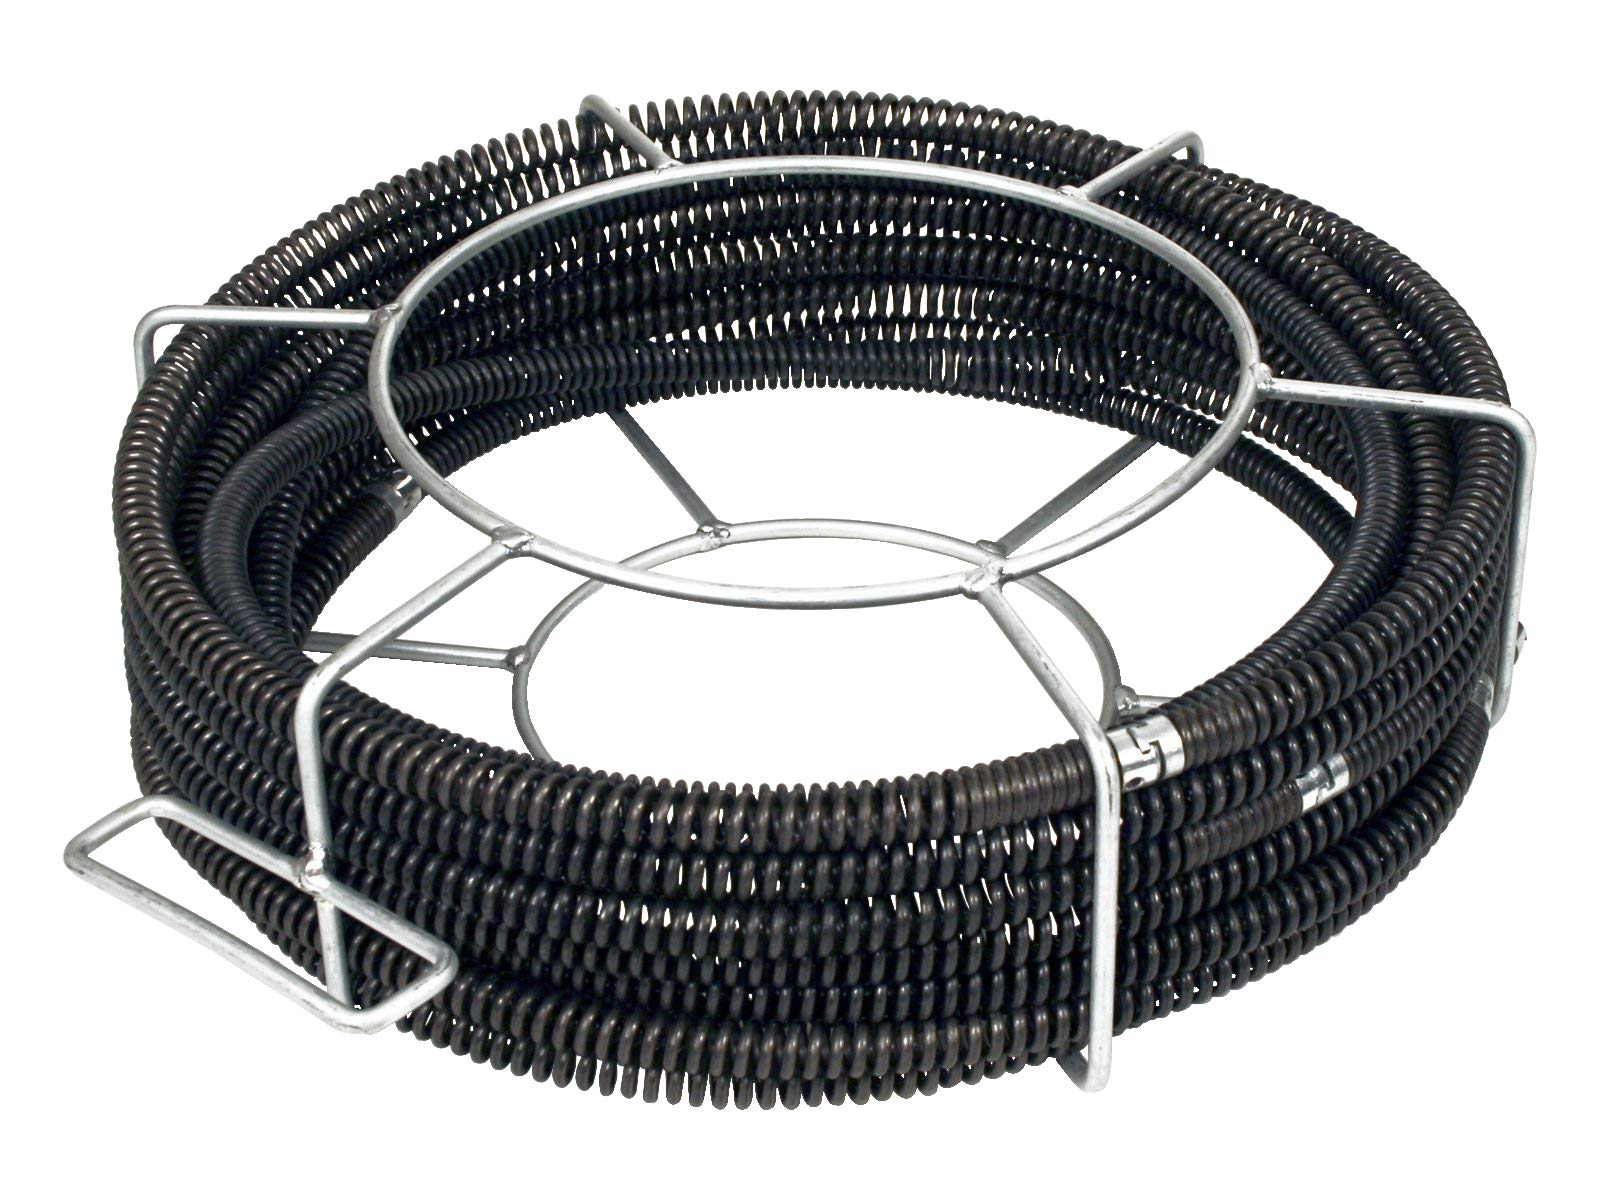 Steel Dragon Tools 62270 C-8 Drain Cleaner Snake Cable 5/8''x 66' fits RIDGID K-50 62270